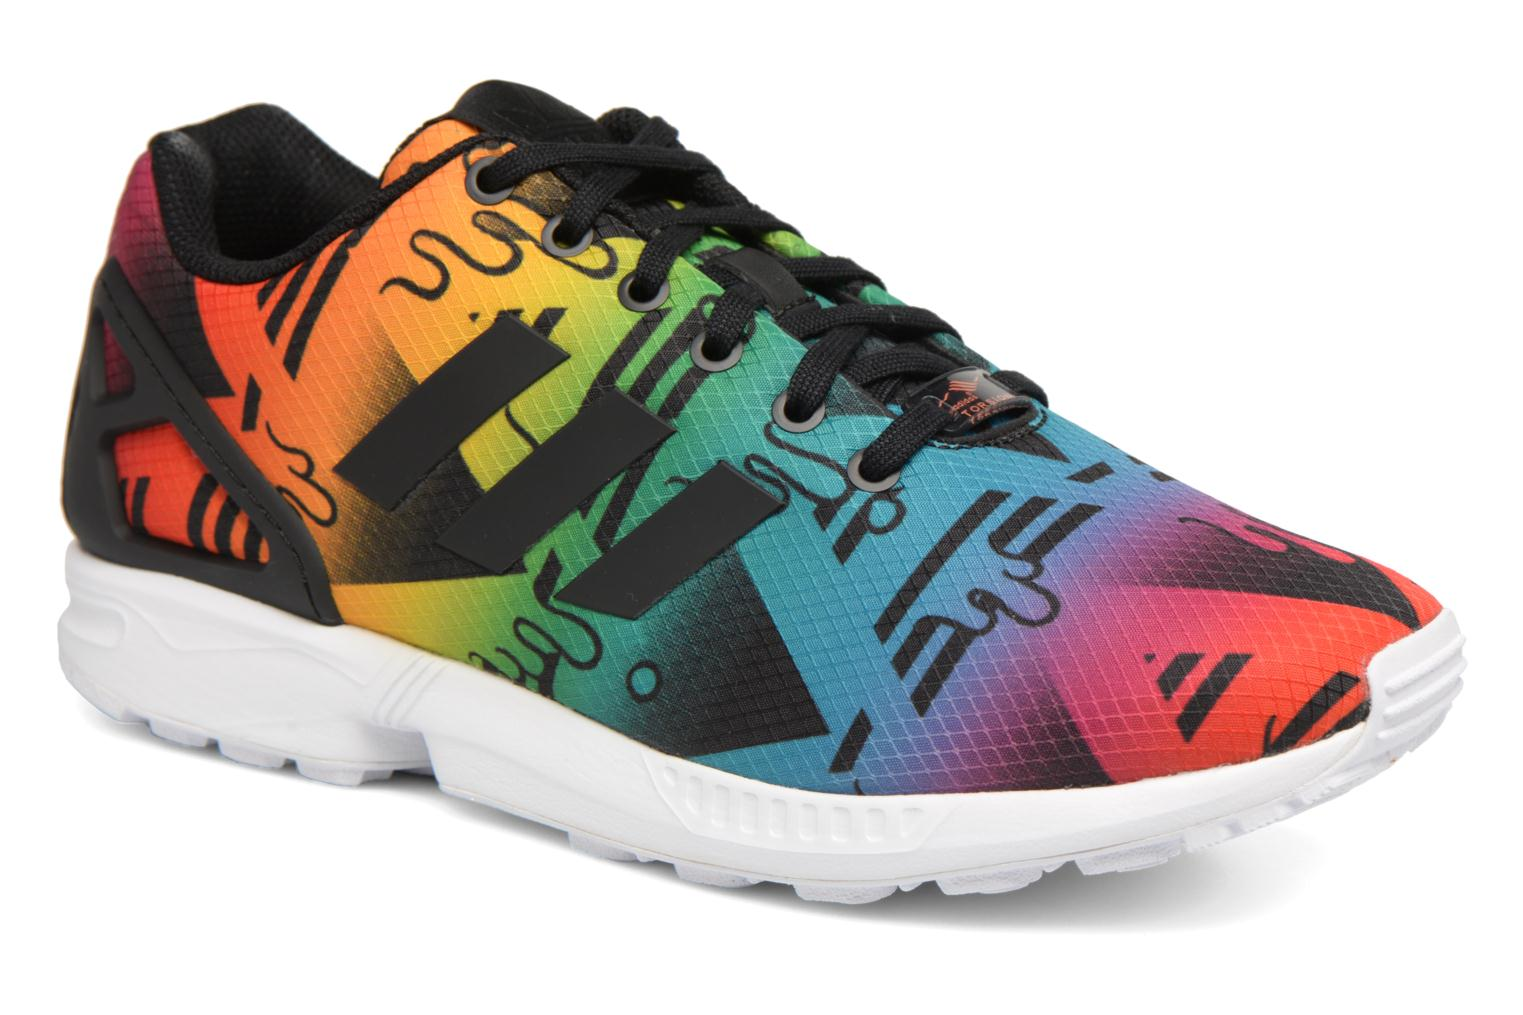 Zx Flux par Adidas Originals